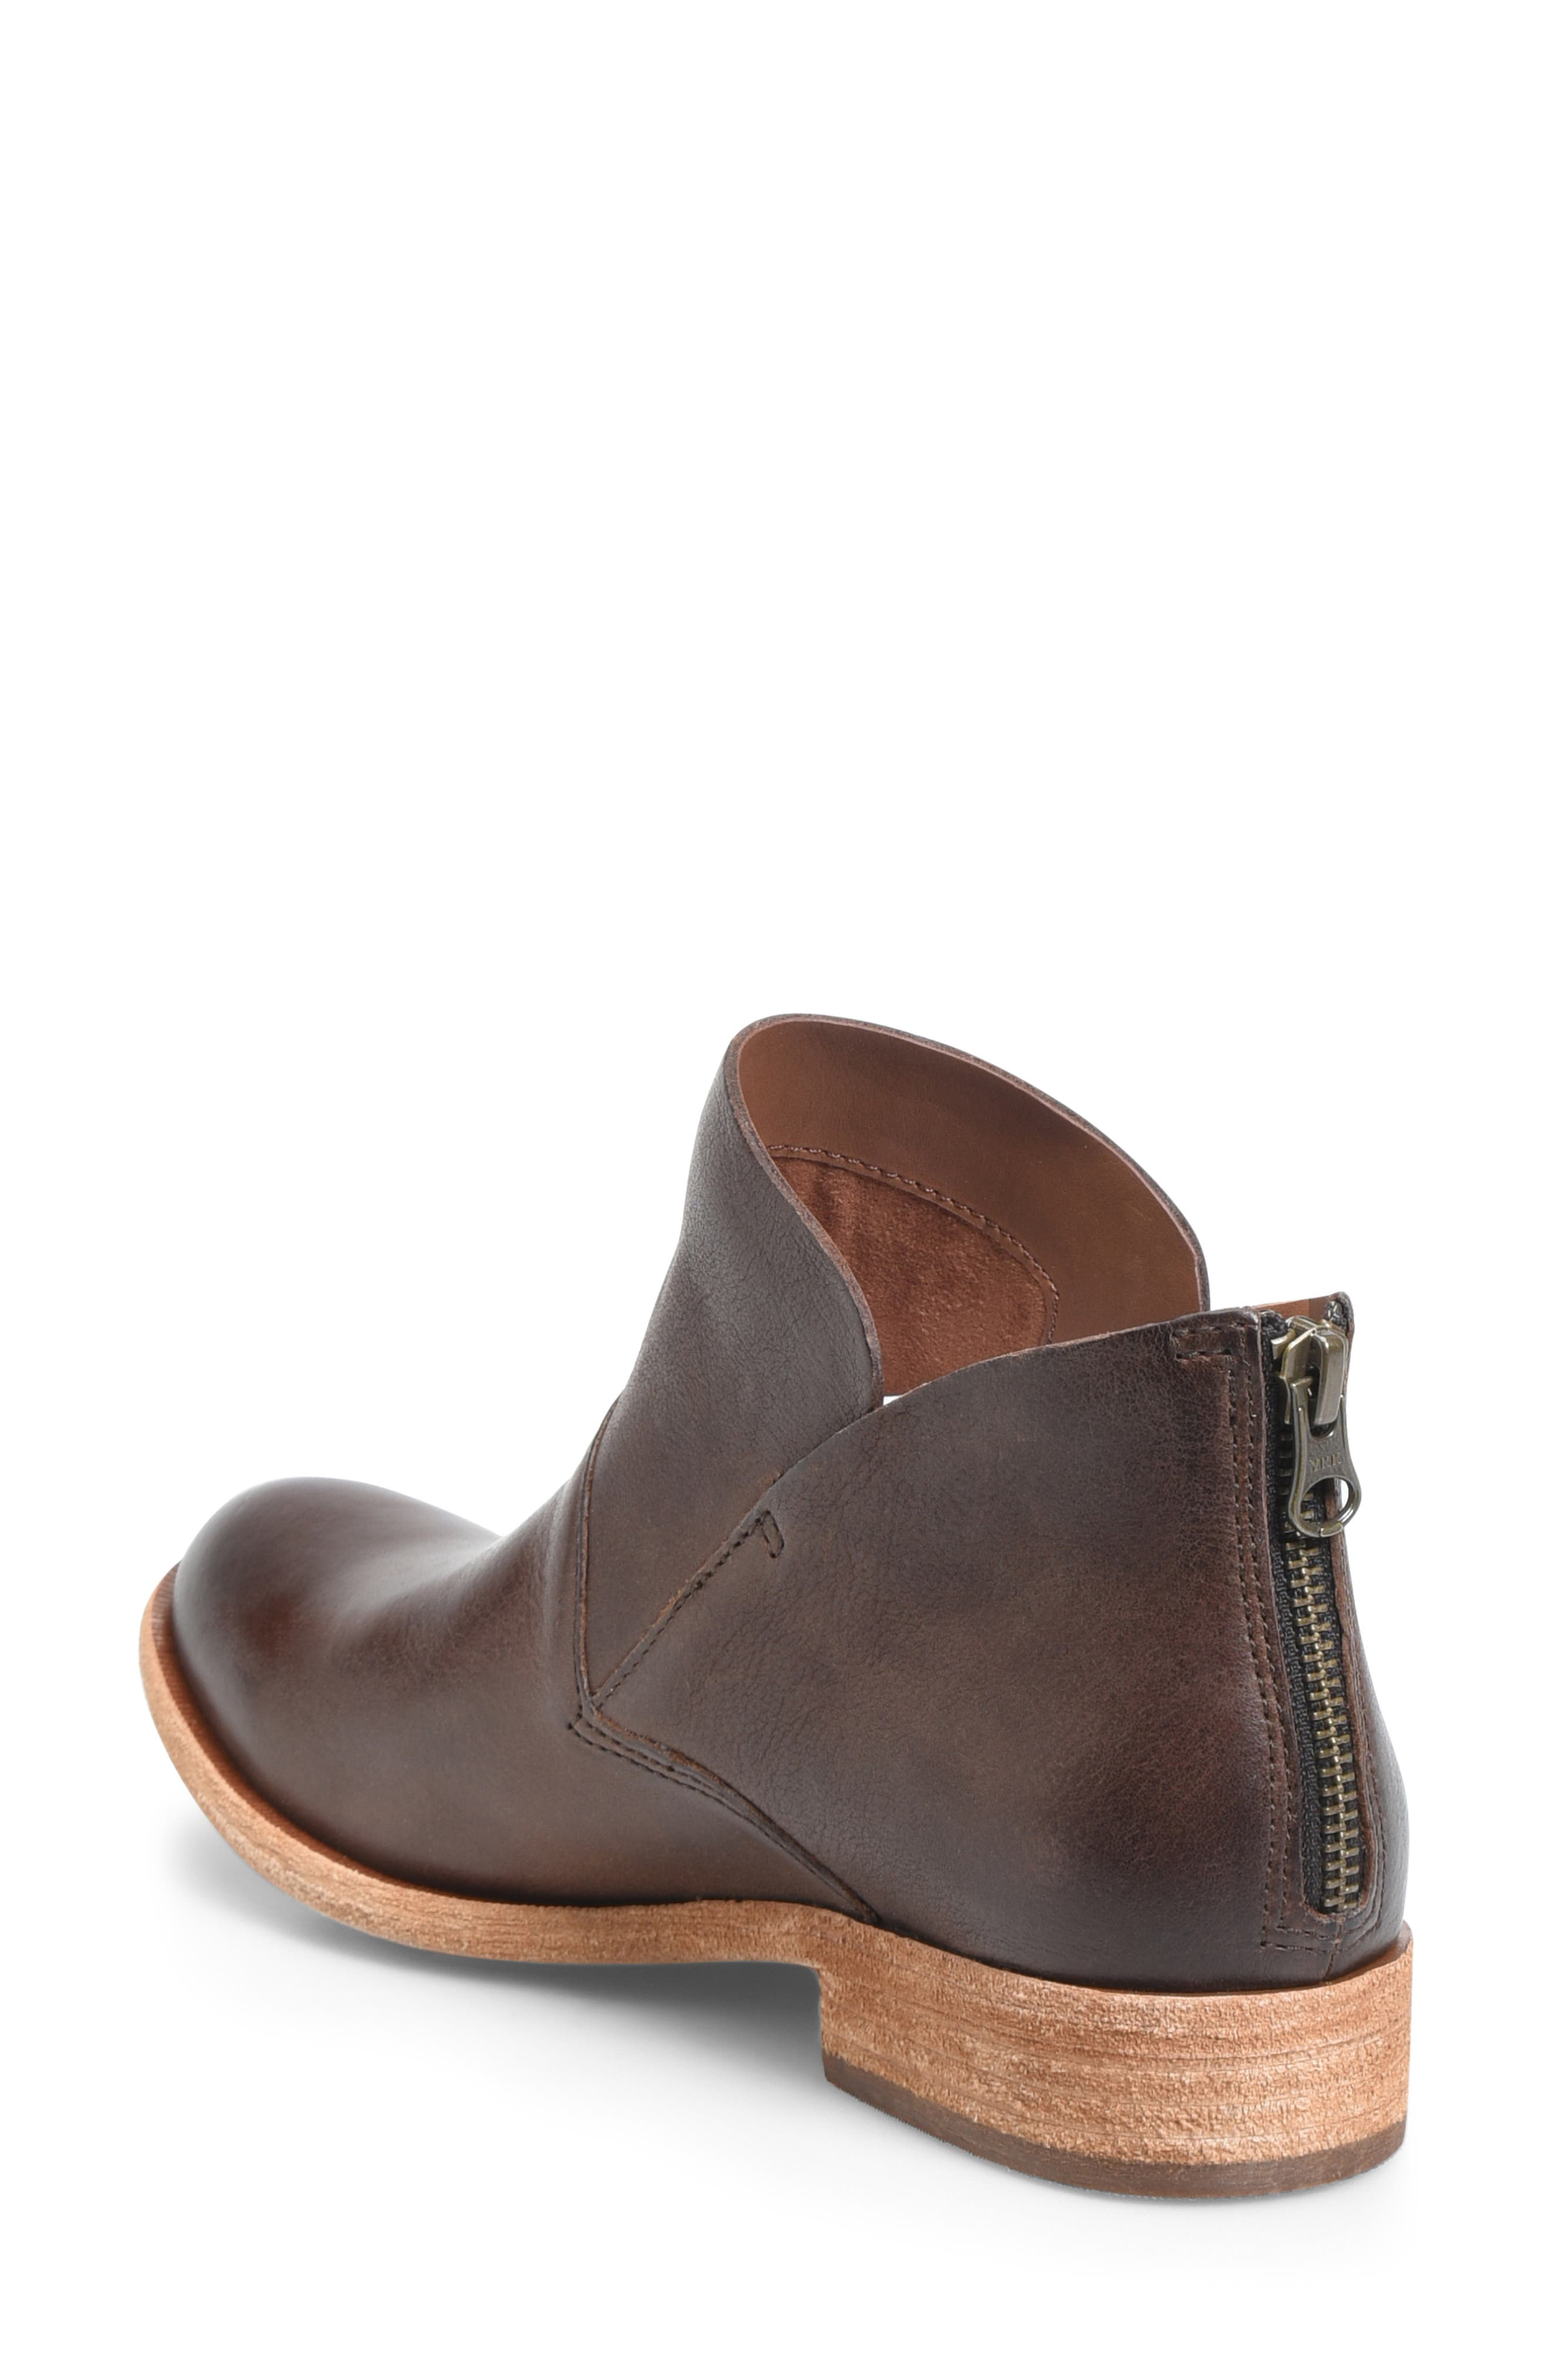 Ryder Ankle Boot,                             Alternate thumbnail 2, color,                             DARK BROWN LEATHER